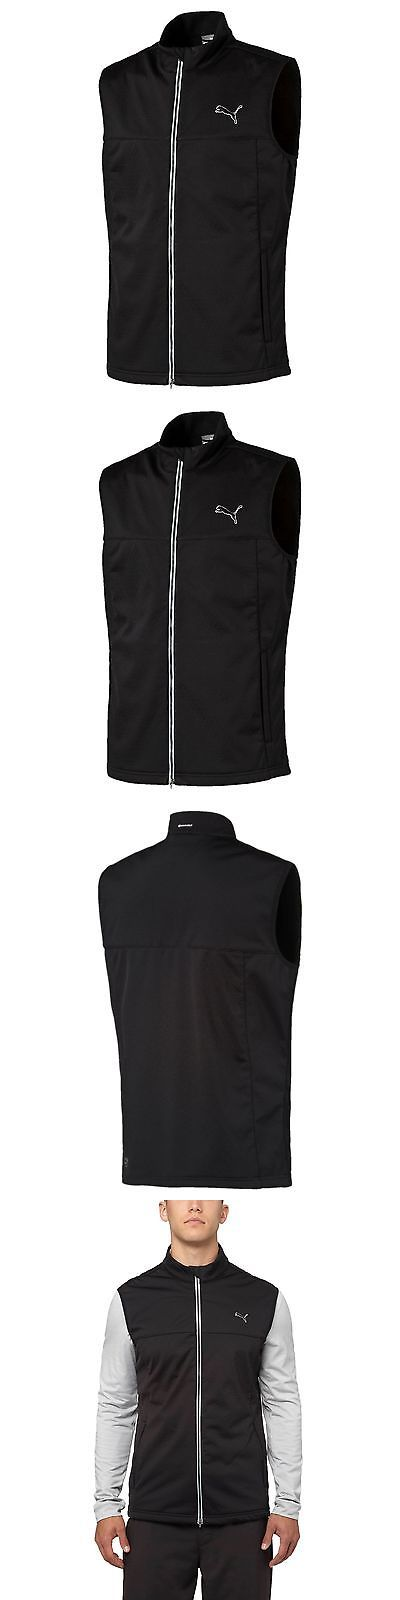 Other Womens Golf Clothing 181152: Pwrwarm Golf Wind Vest -> BUY IT NOW ONLY: $85 on eBay!